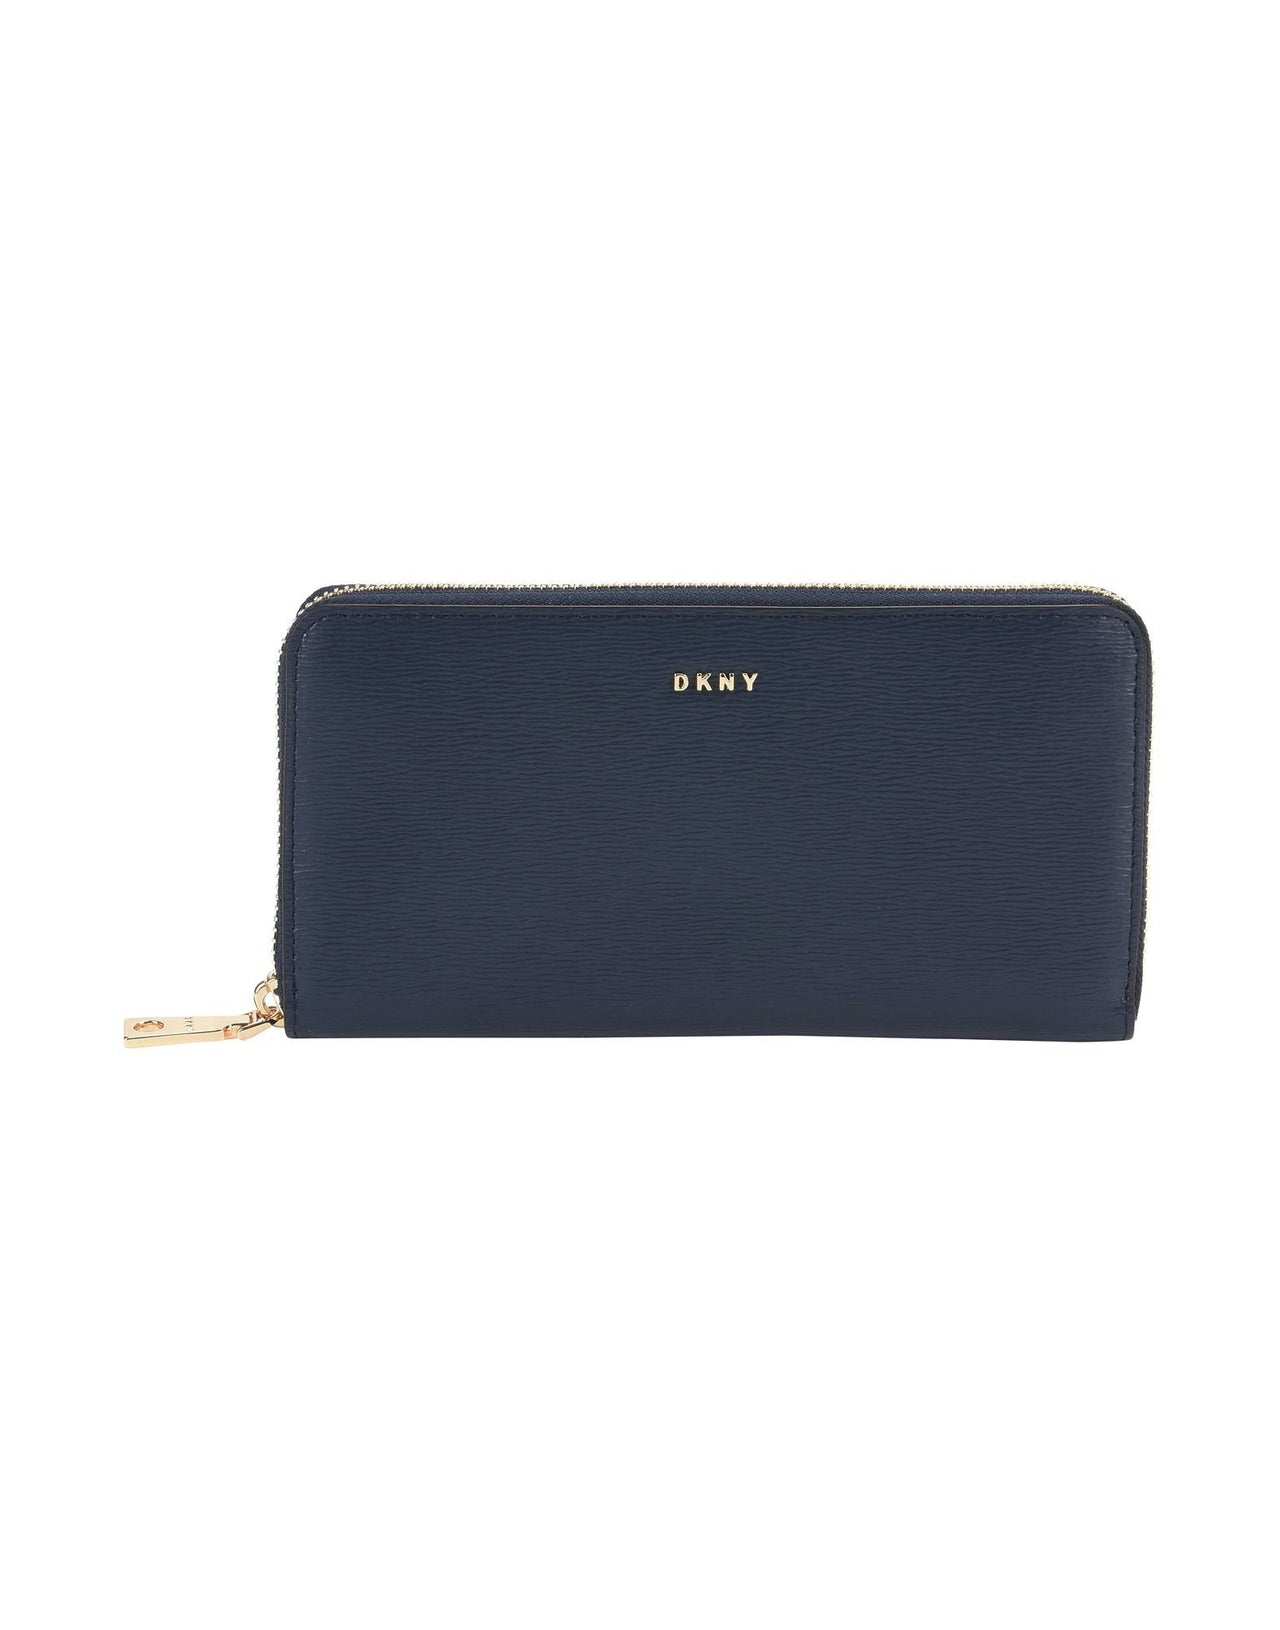 DKNY PORTFEL LARGE ZIP AROUND WALLET - LovelyMadness Clothing Online Fashion Malaysia